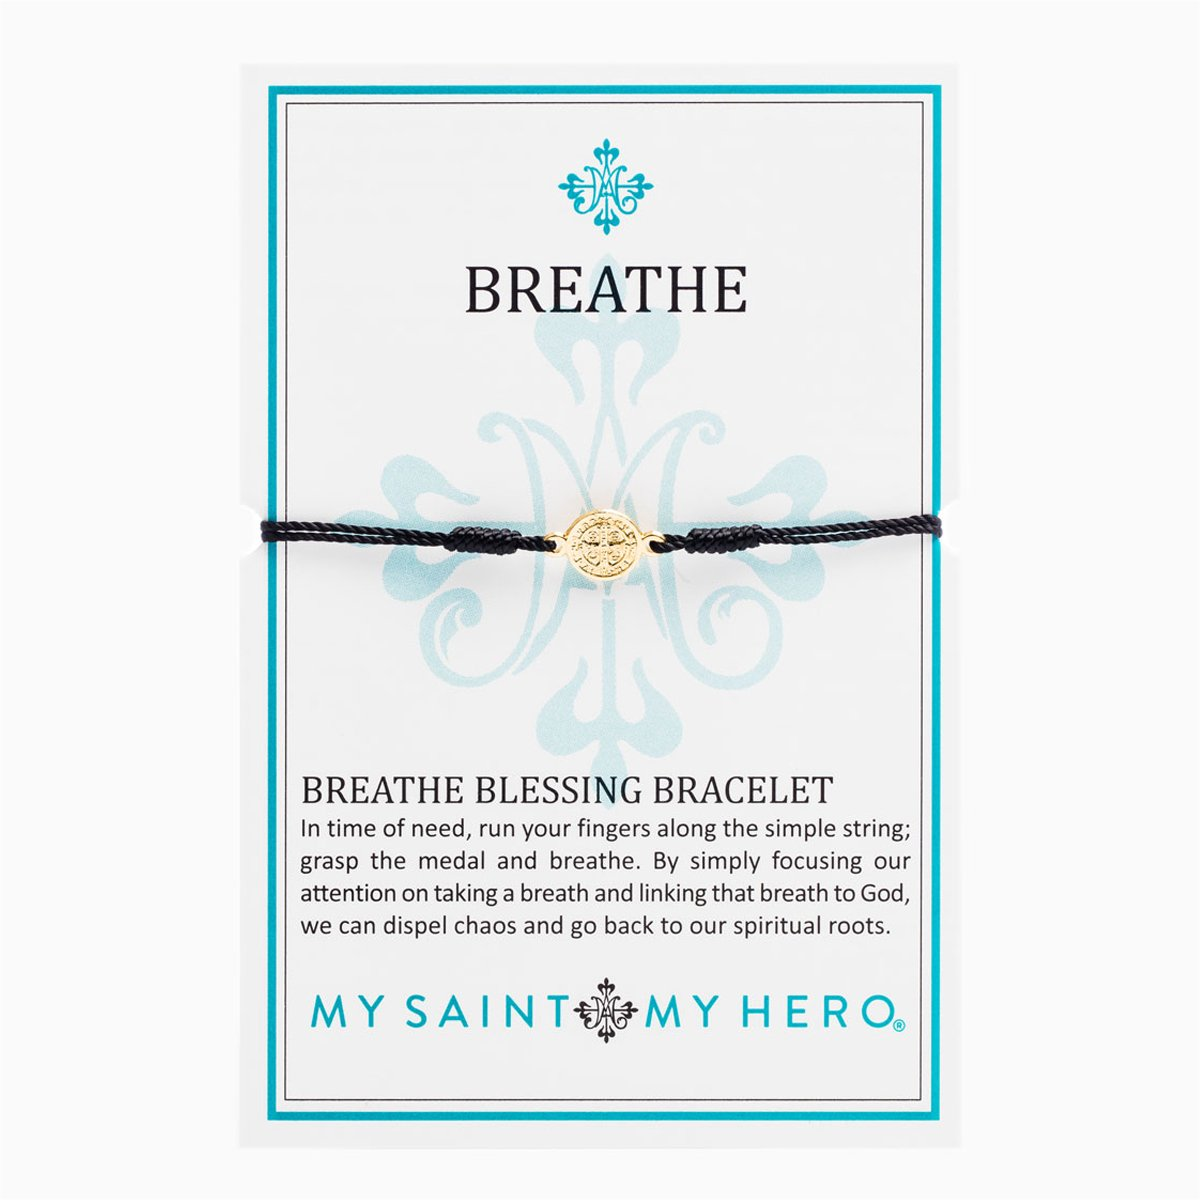 Breathe Blessing Bracelet